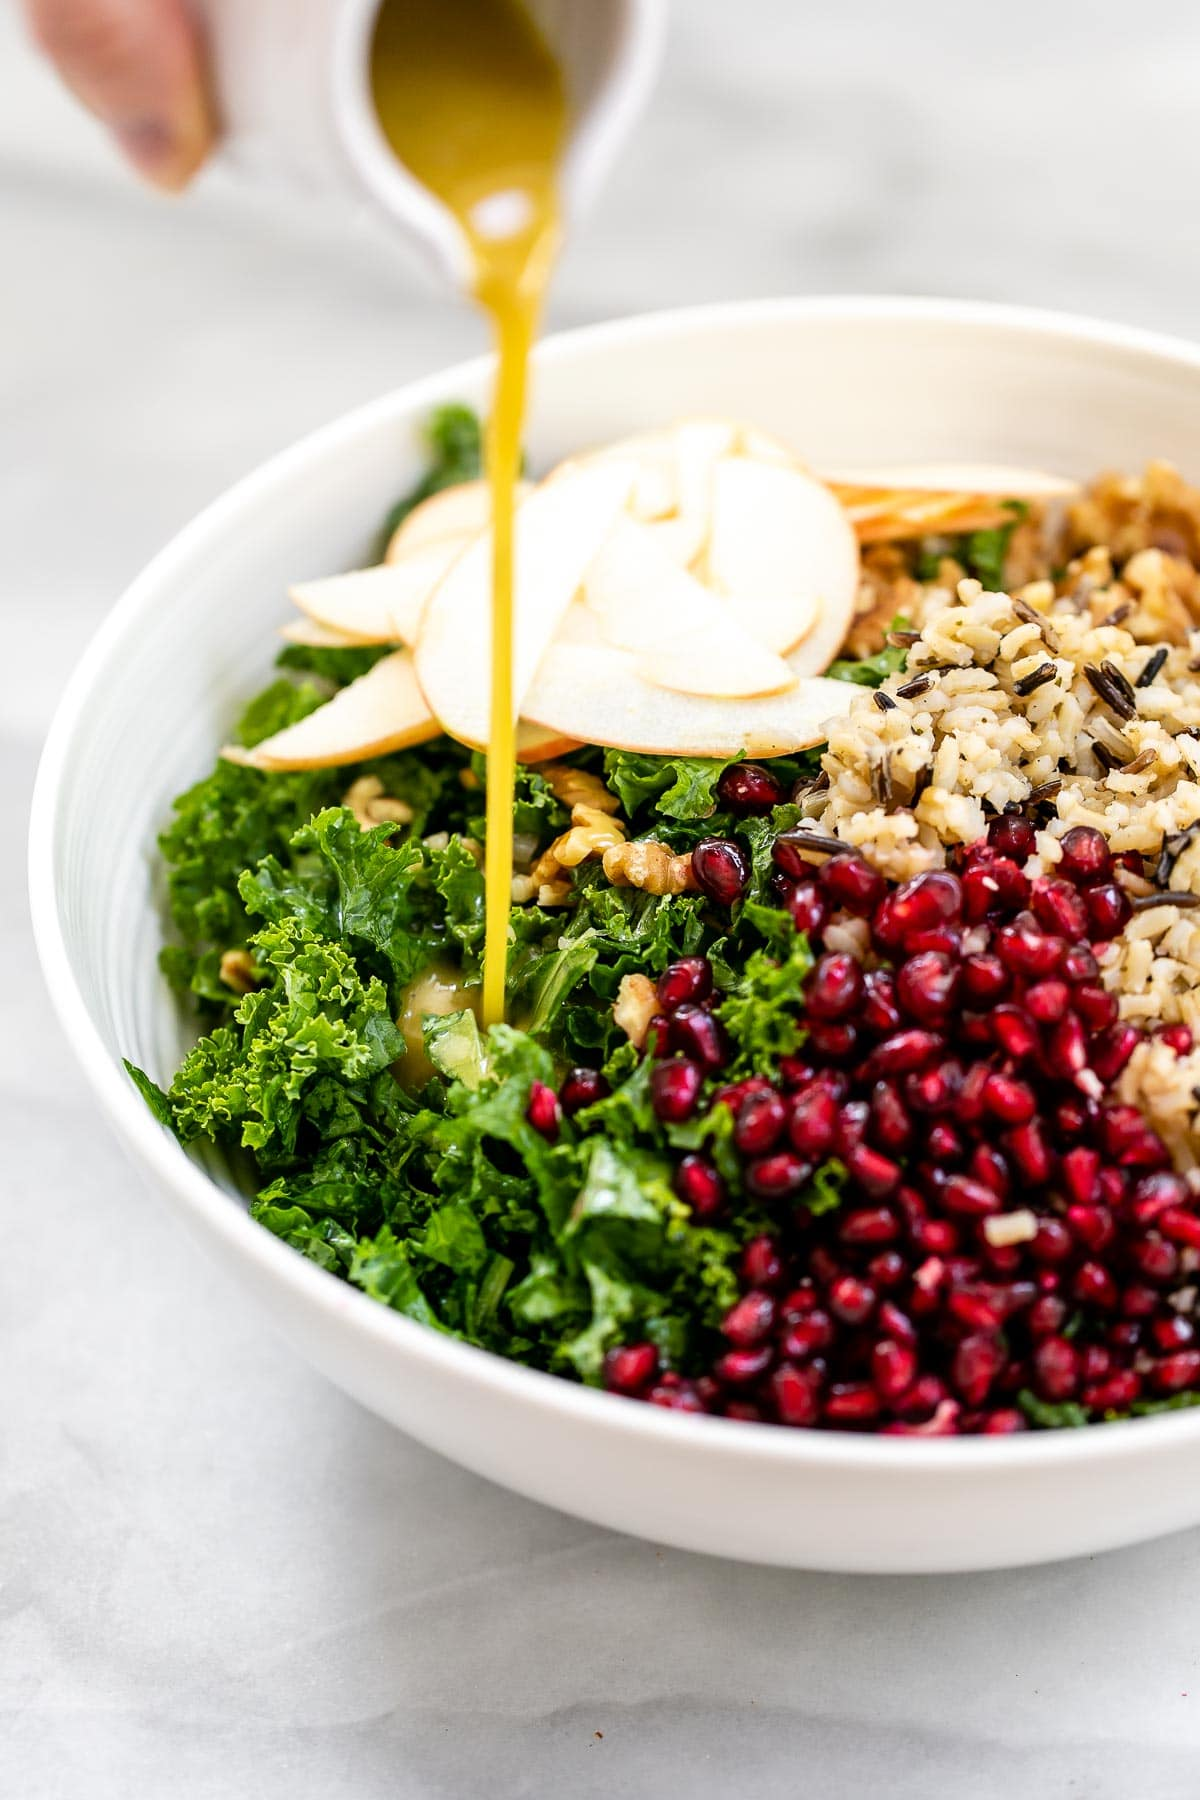 Kale salad with pomegranate and wild rice.